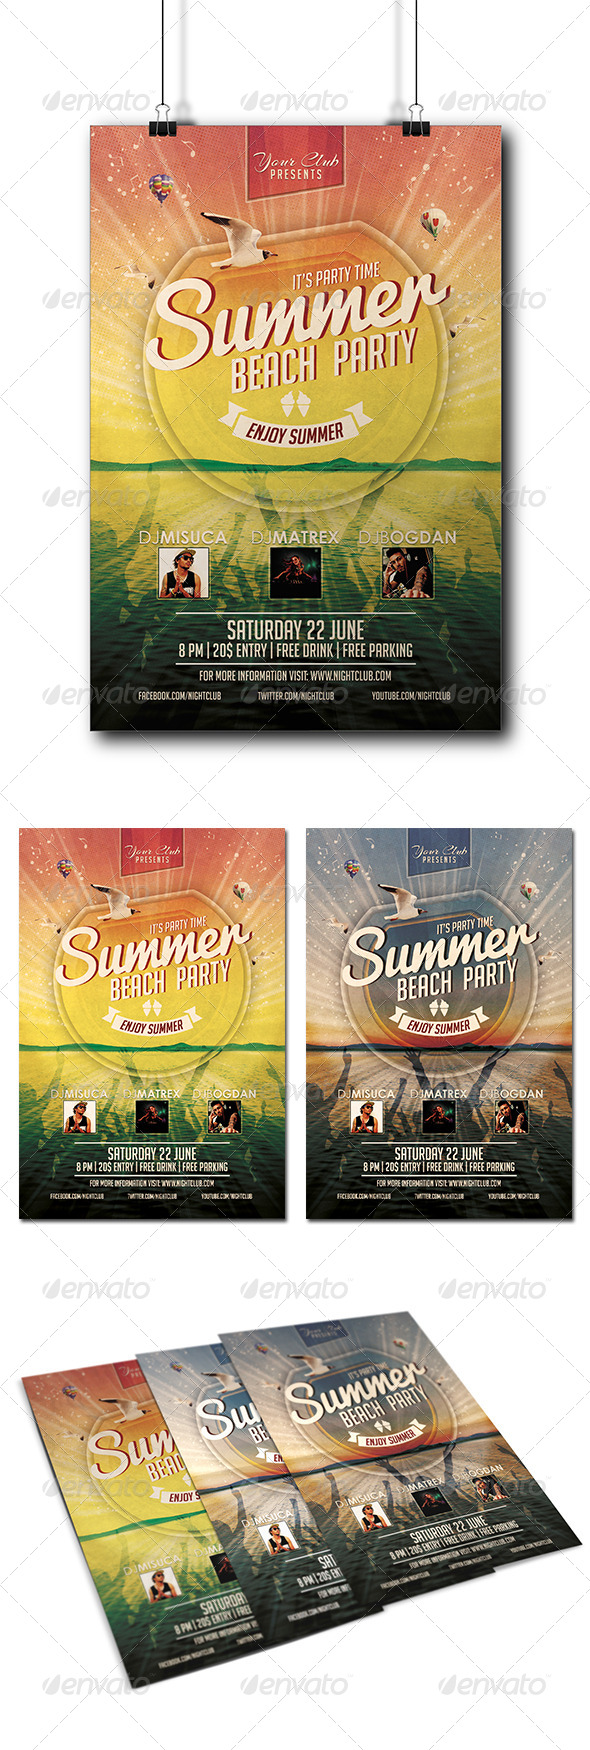 GraphicRiver Summer Beach Party Flyer 8373227